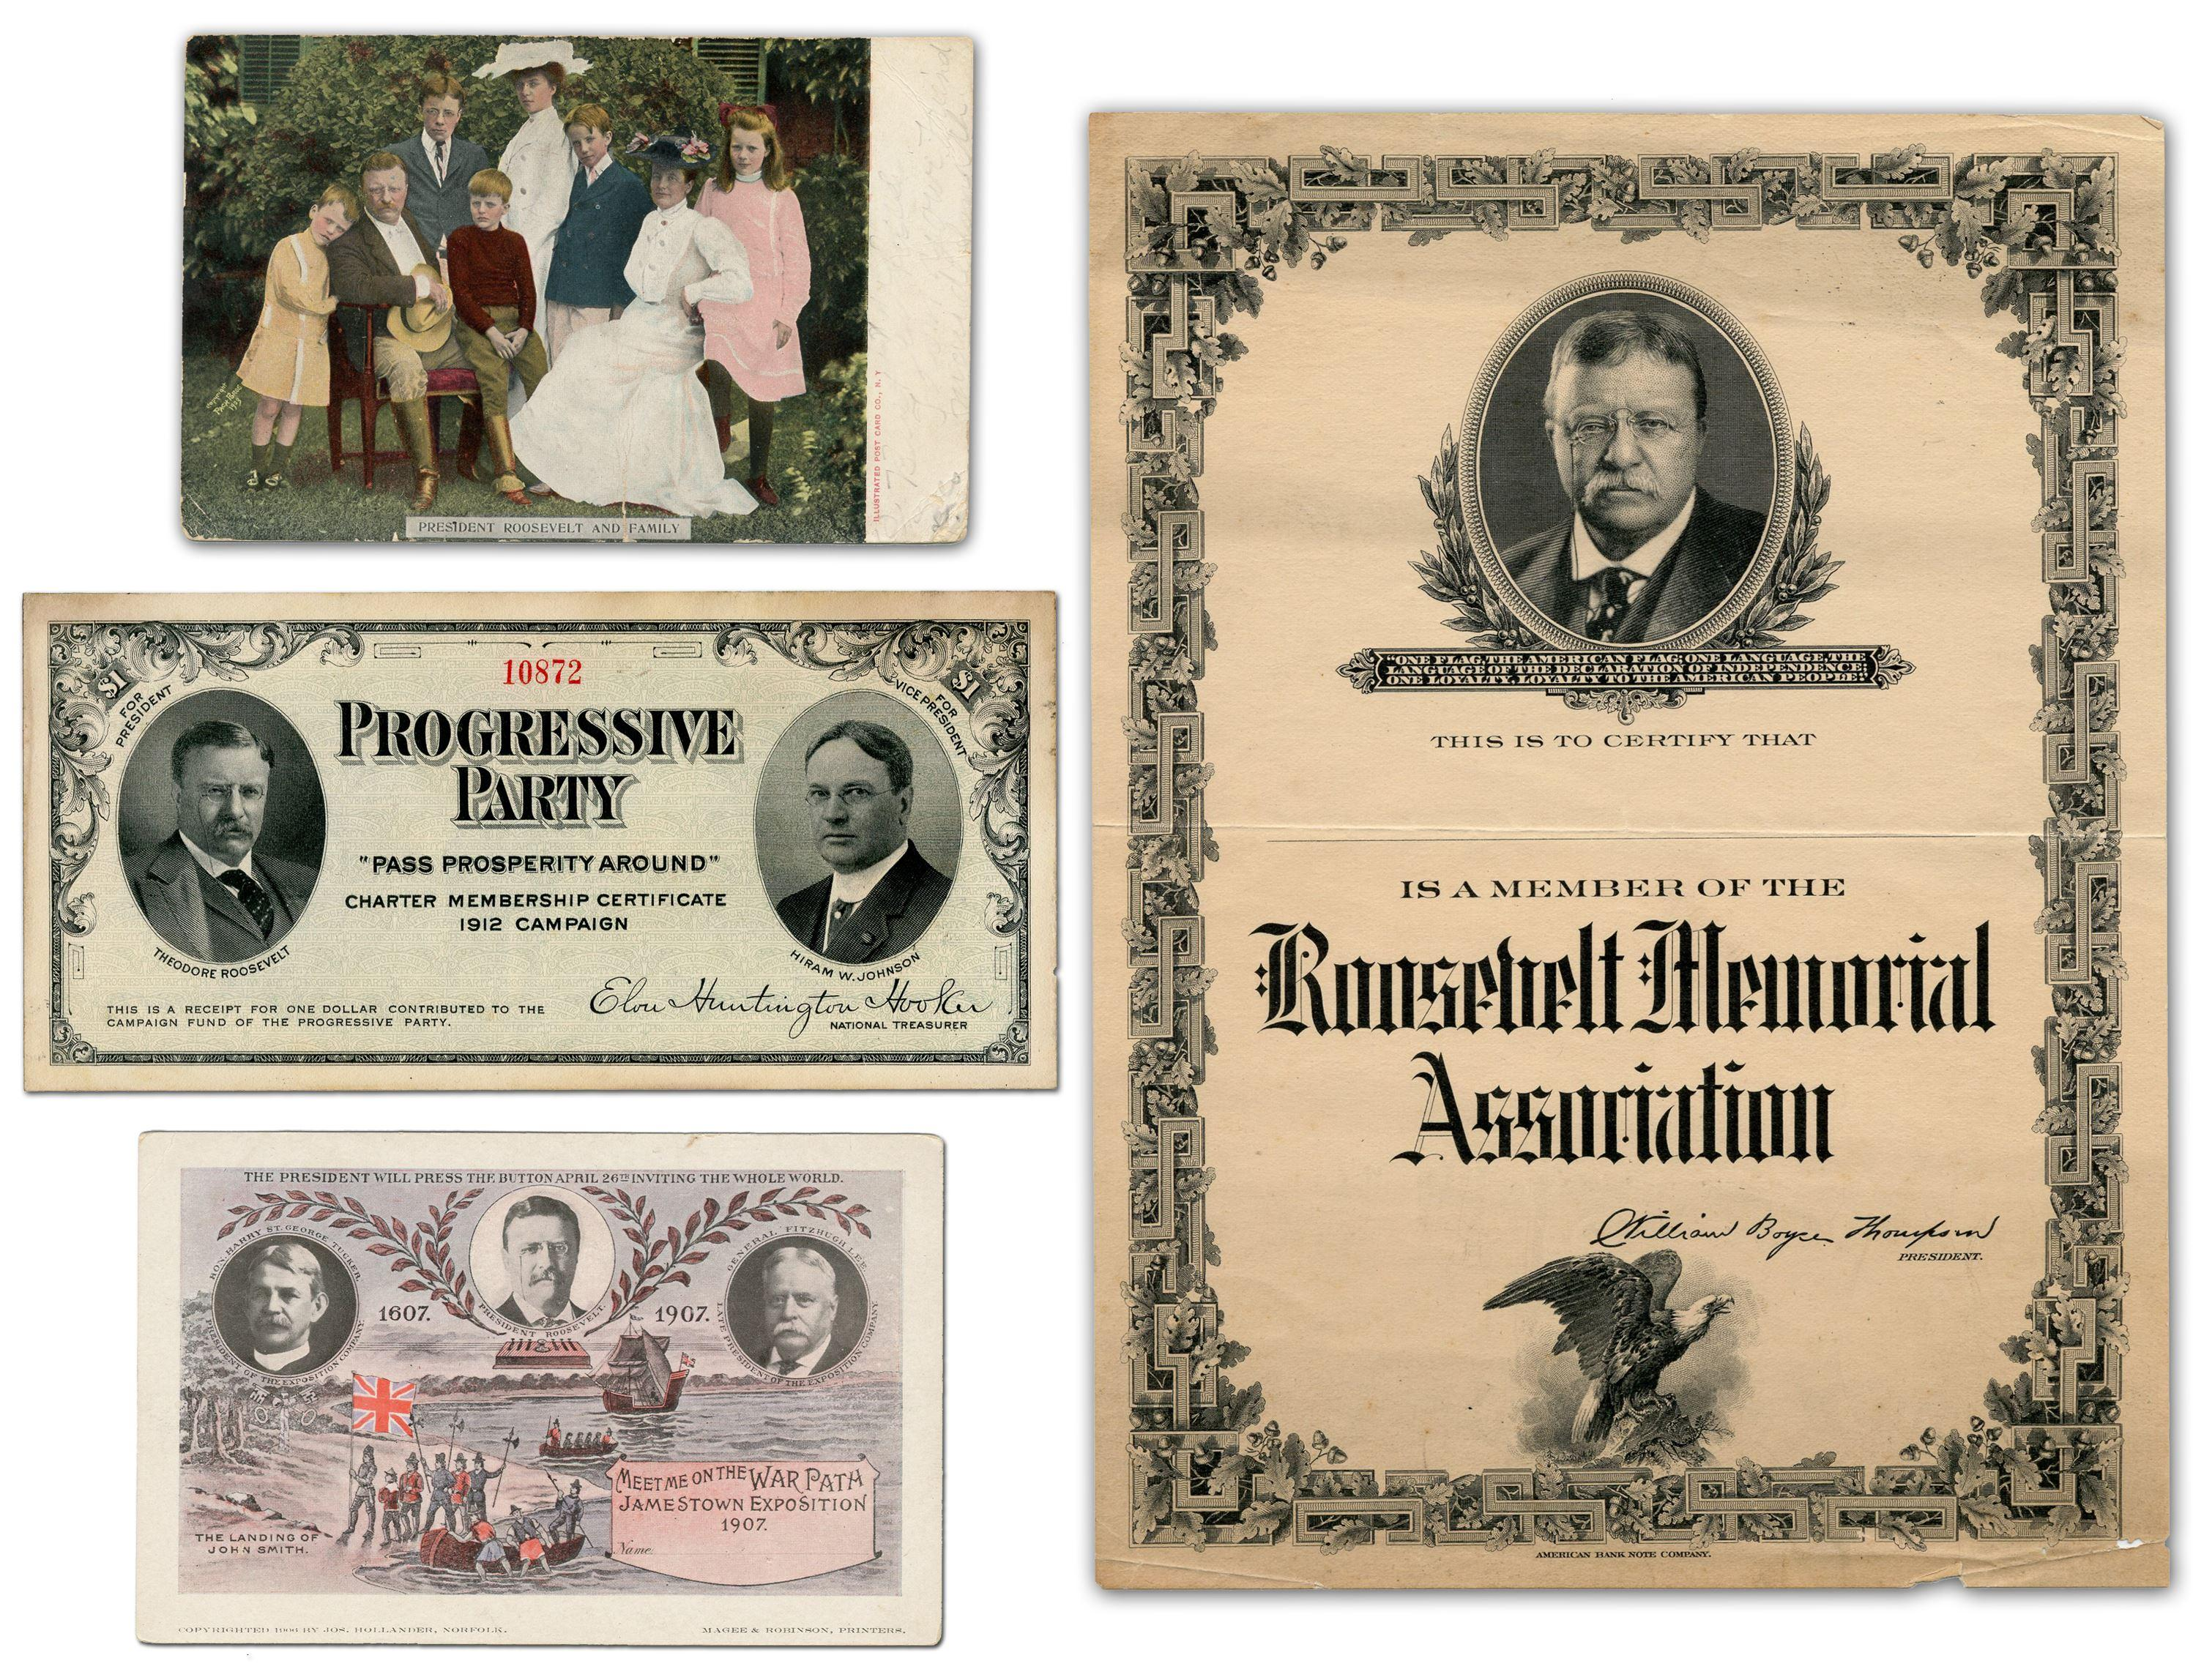 Theodore Roosevelt Ephemera, 4 Pcs, Relating to Presidency, Progressive Party, & Posthumous Commemoration